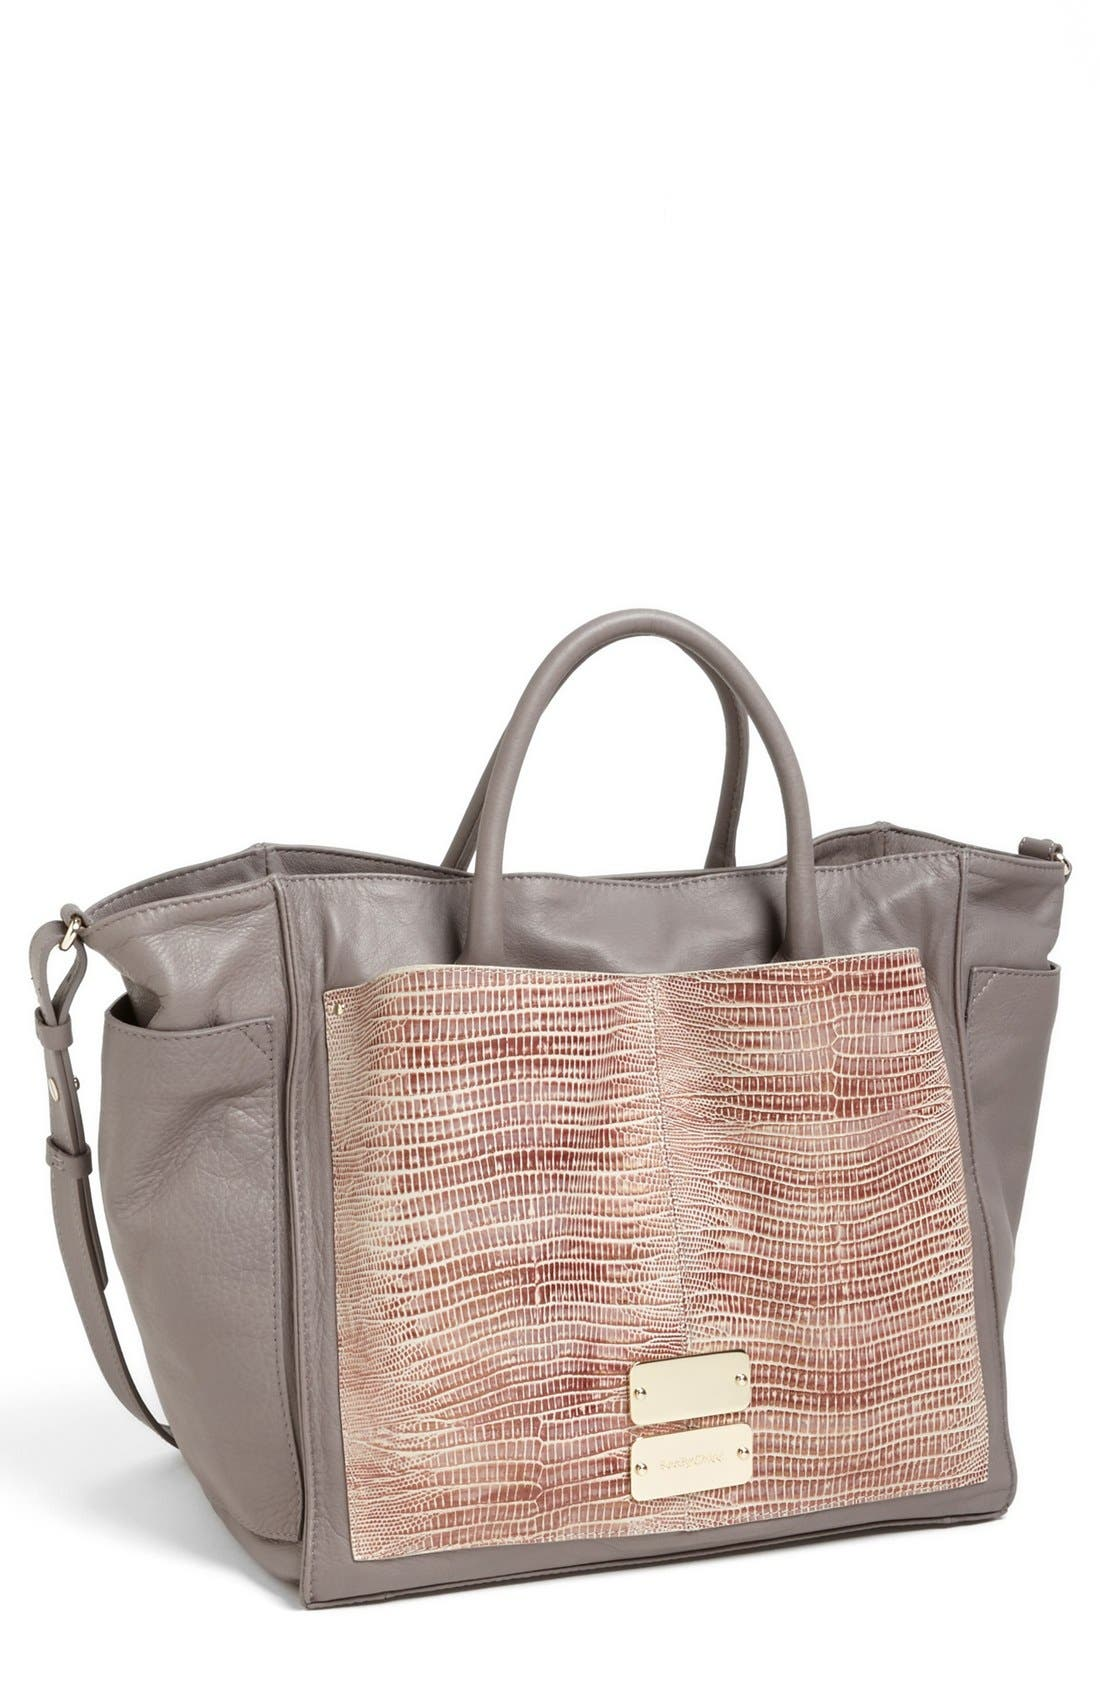 Alternate Image 1 Selected - See by Chloé 'Nellie' Tote